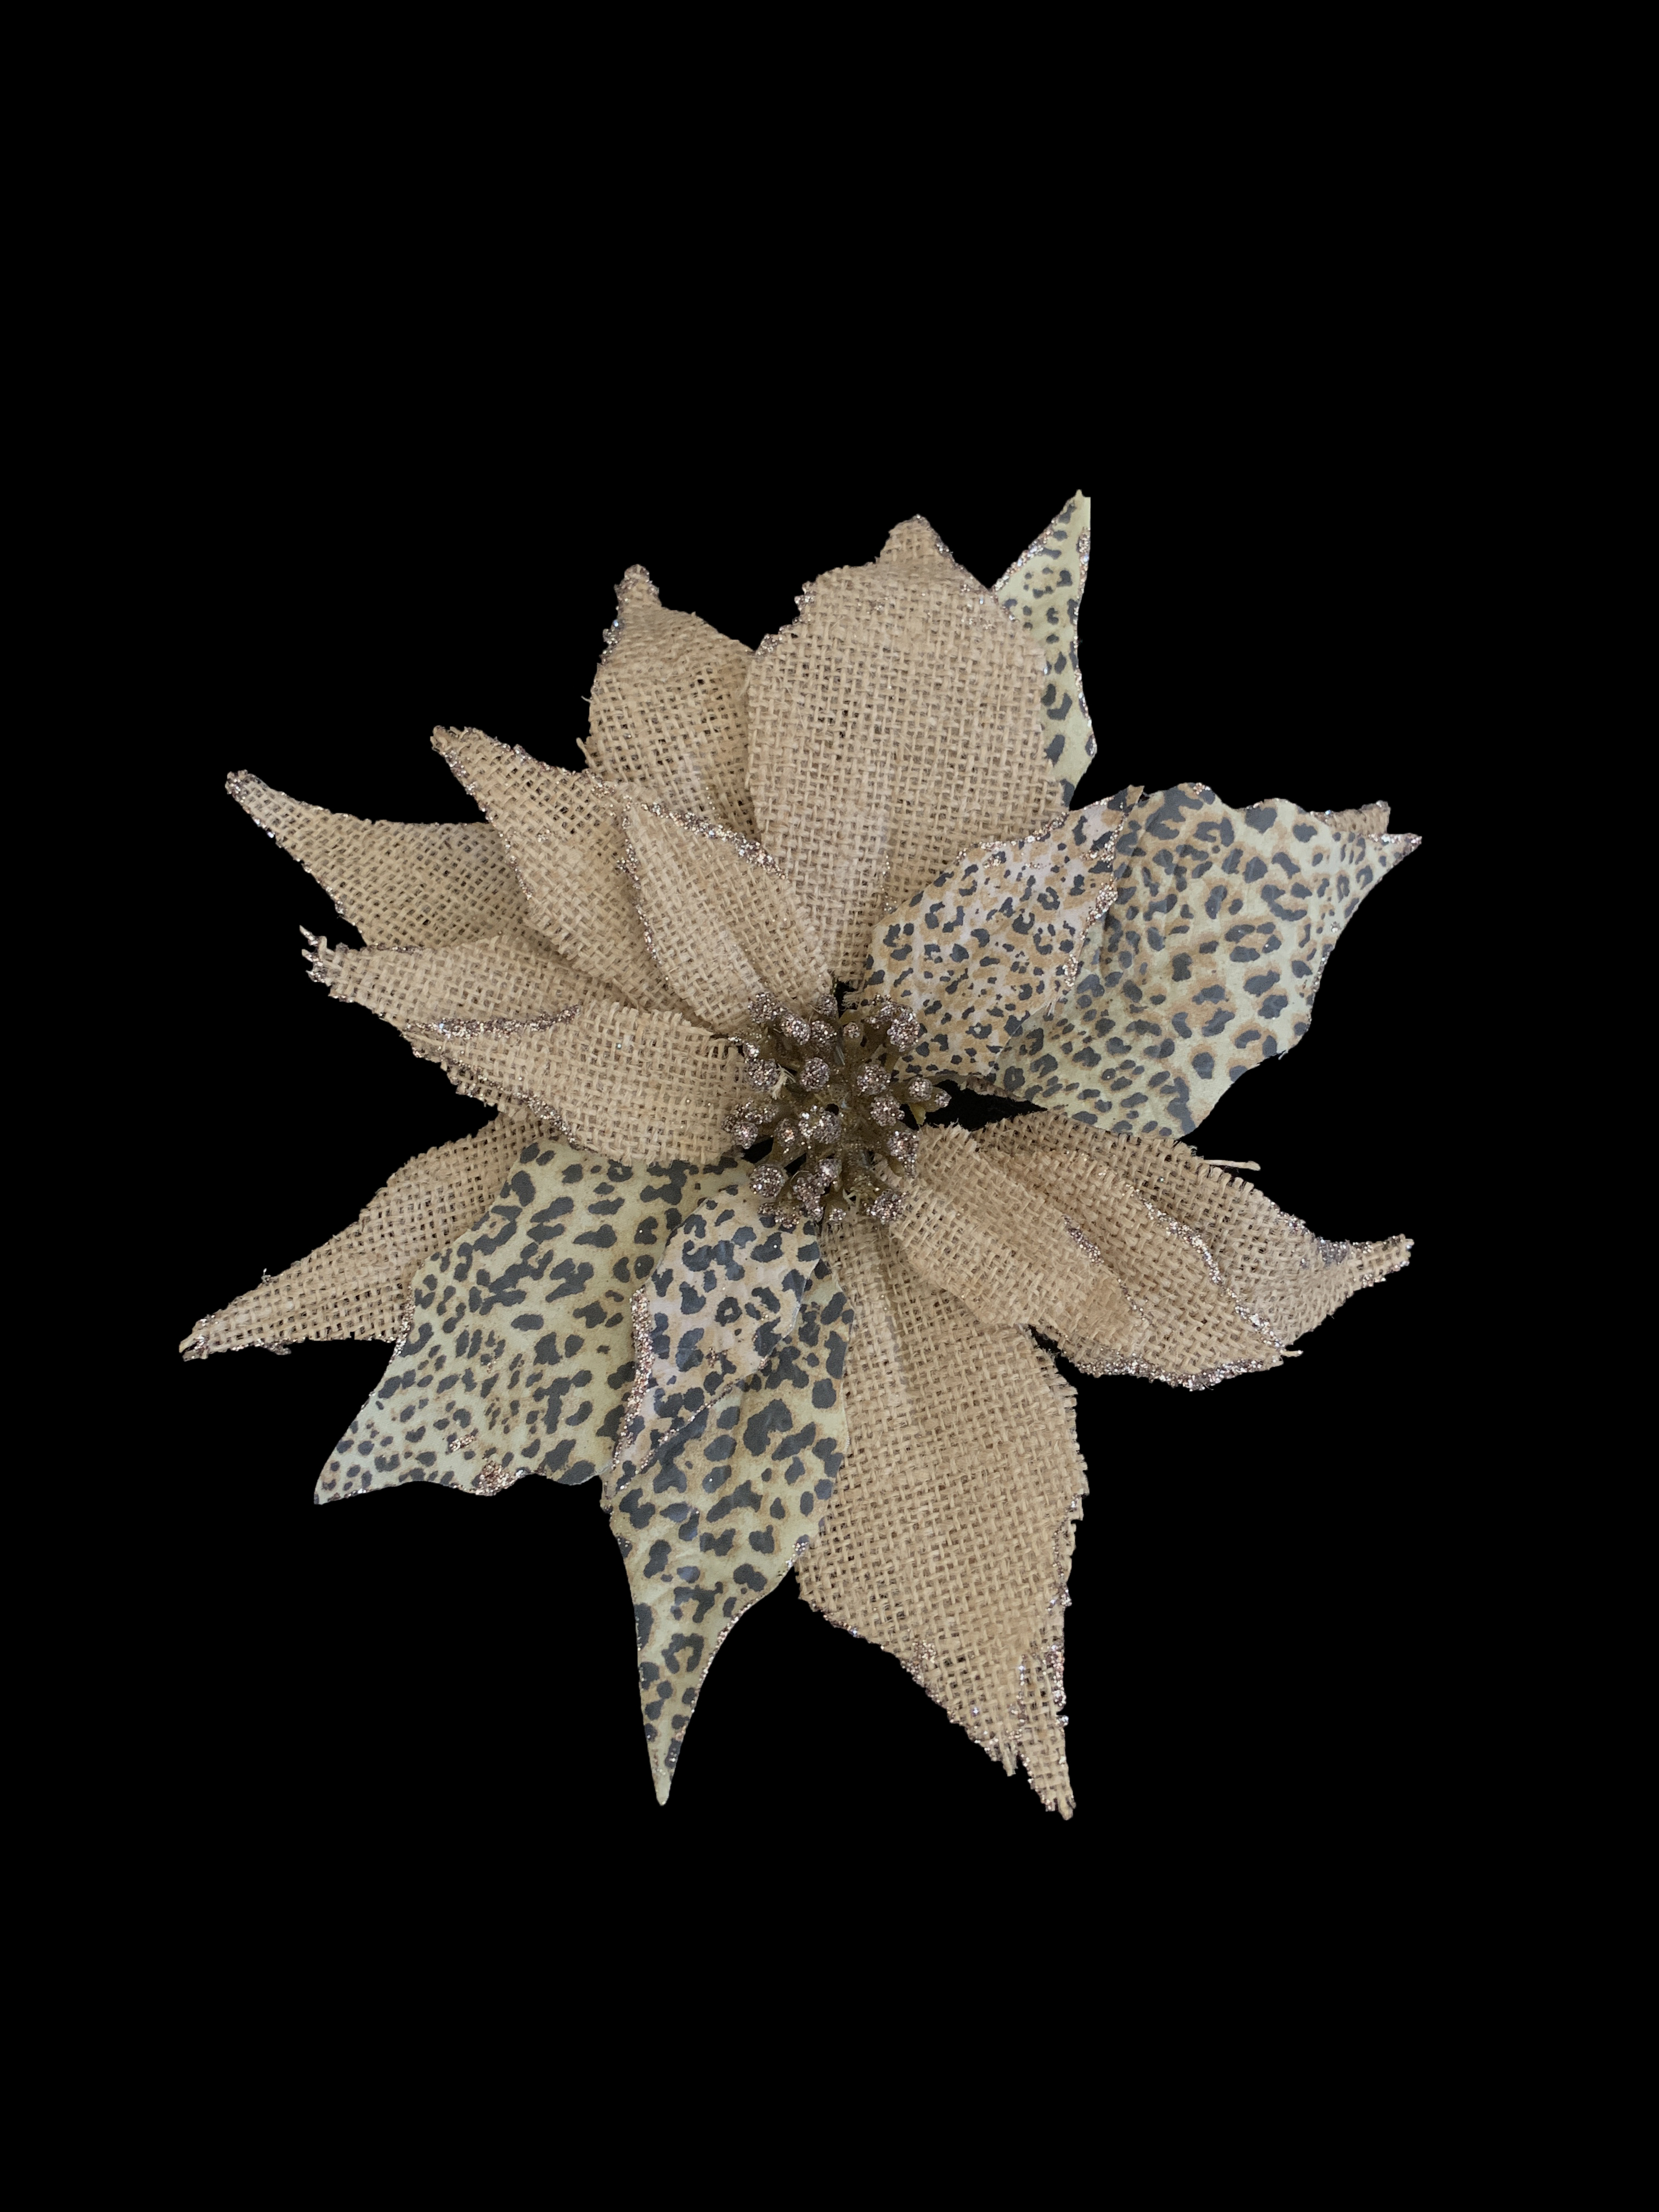 Clip on Burlap and Leopard Patterned Poinsettia Ornament